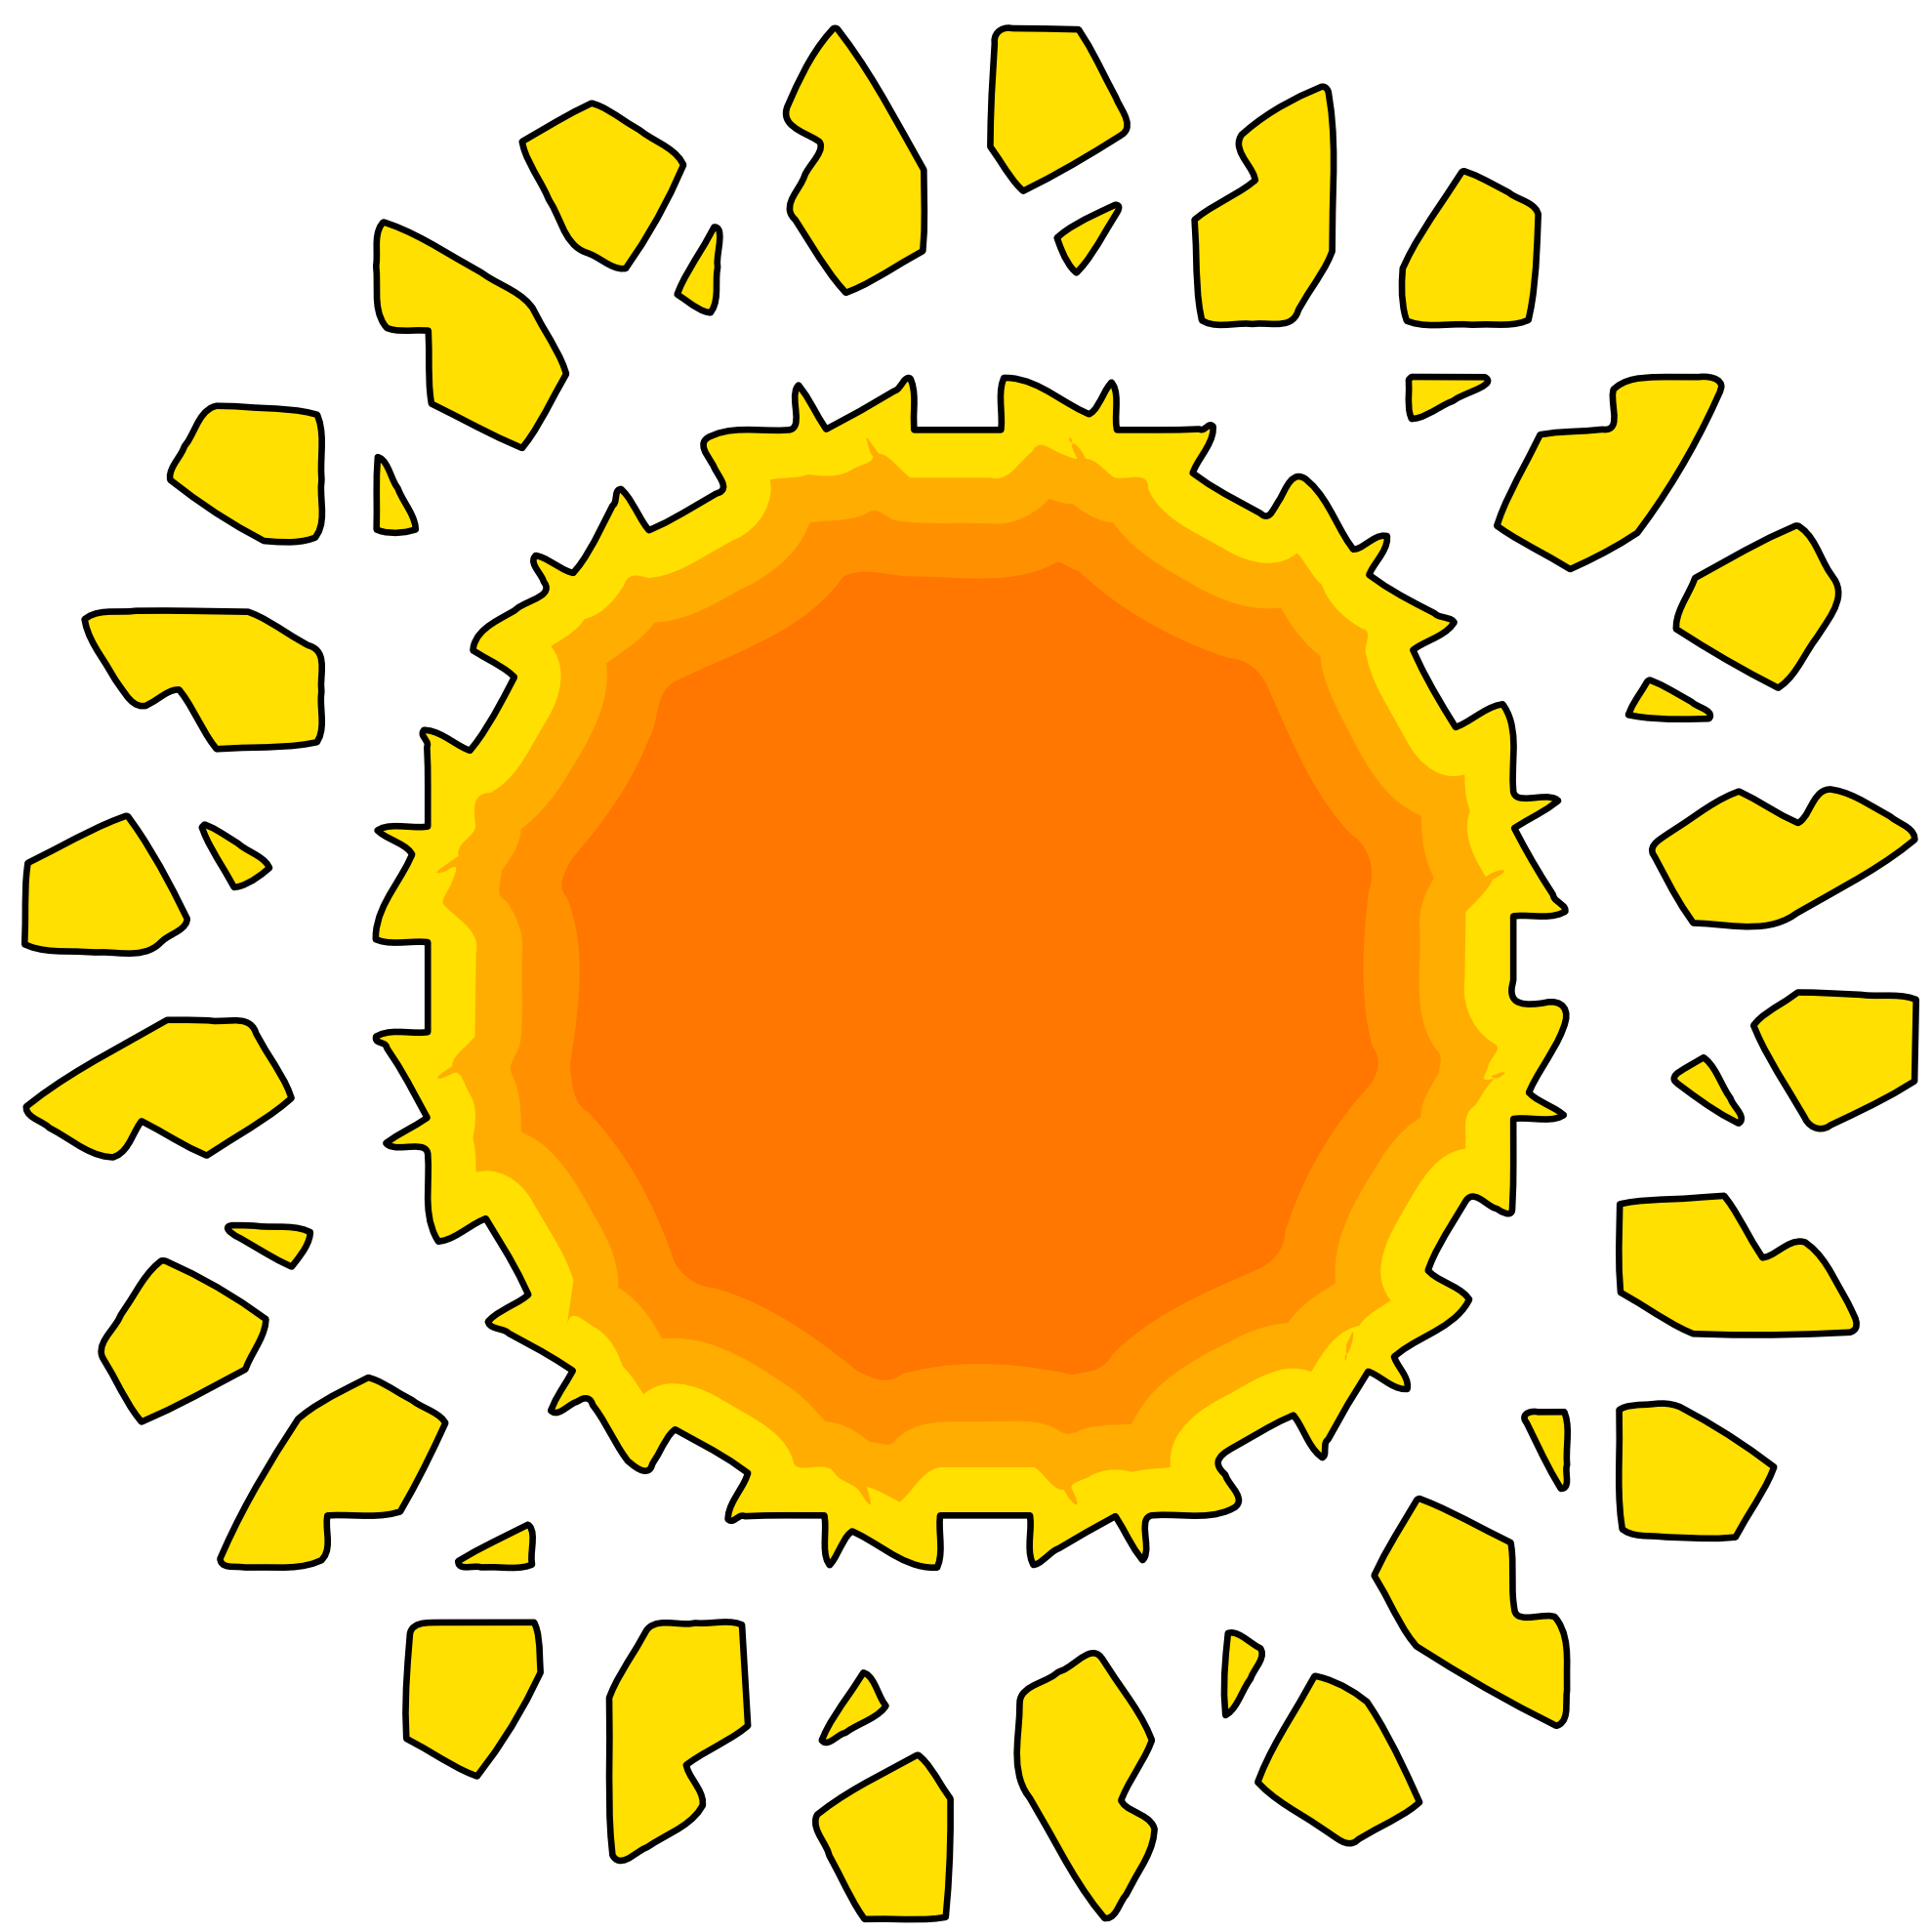 Clip Art The Sun Clipart the sun clipart best images for free download clip art on